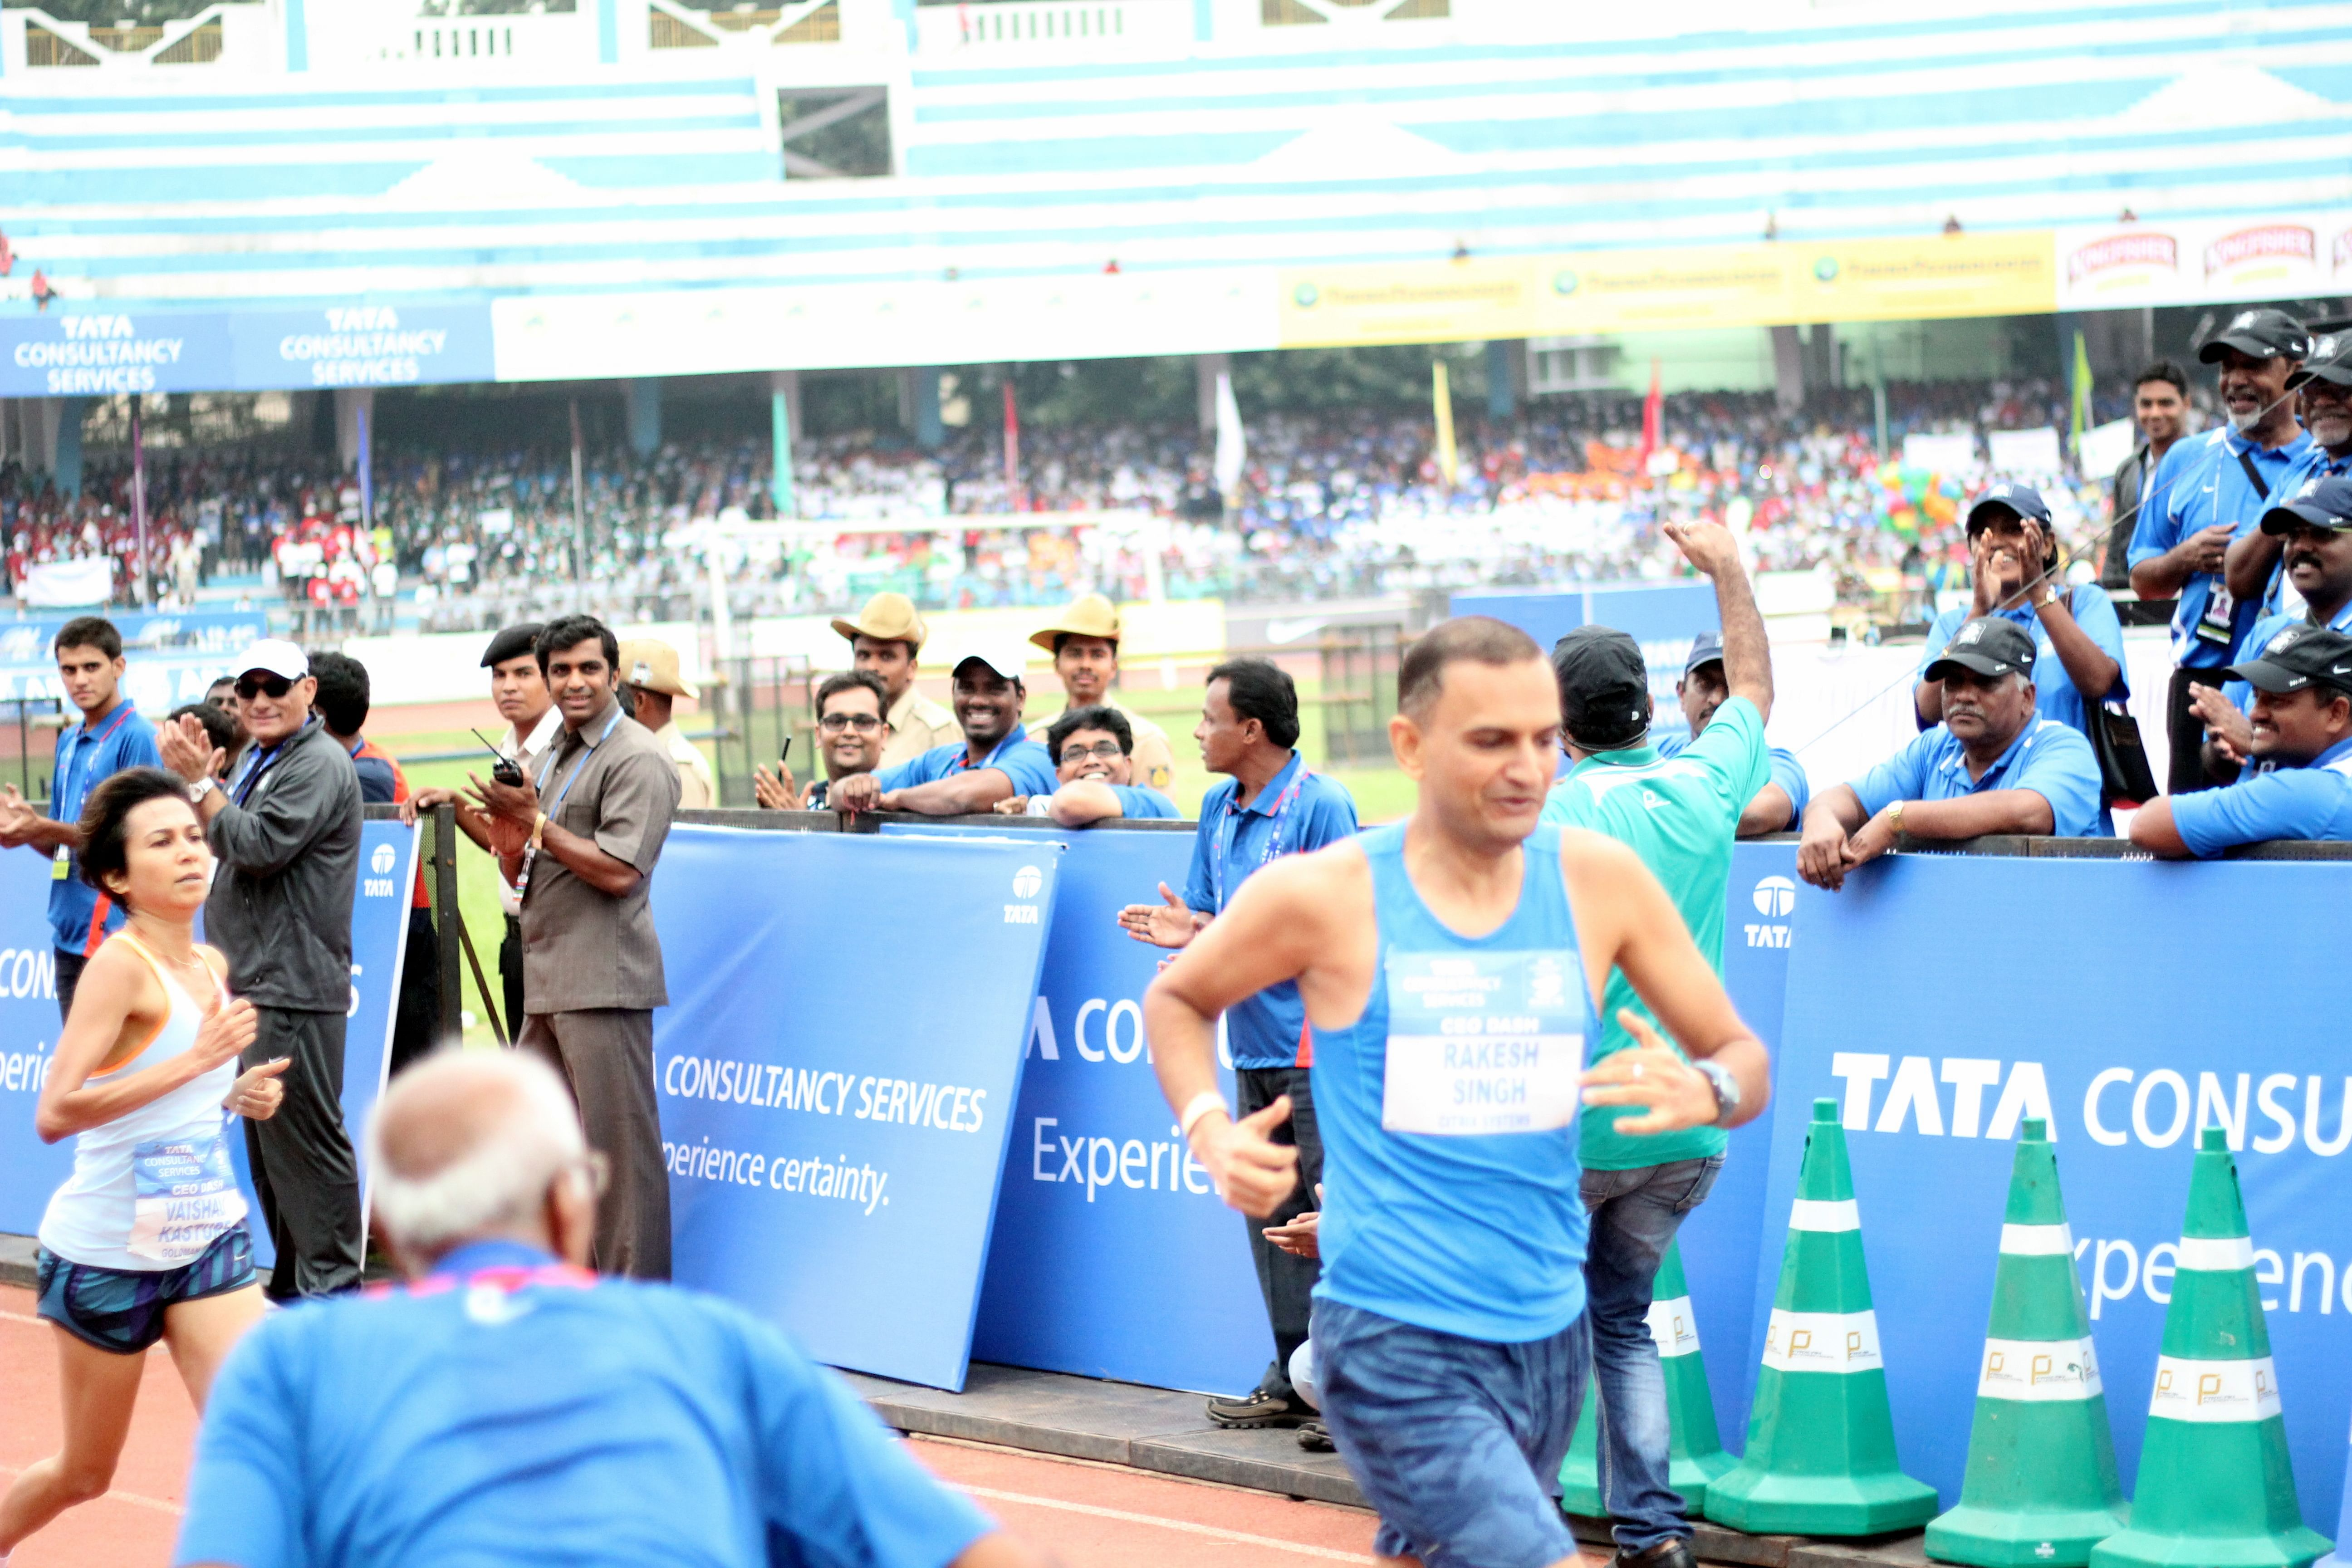 Rakesh Singh, CEO, Citrix Systems, was closely followed home by Vaishali Kasture, MD, Goldman Sachs in the CEO 400m Dash.